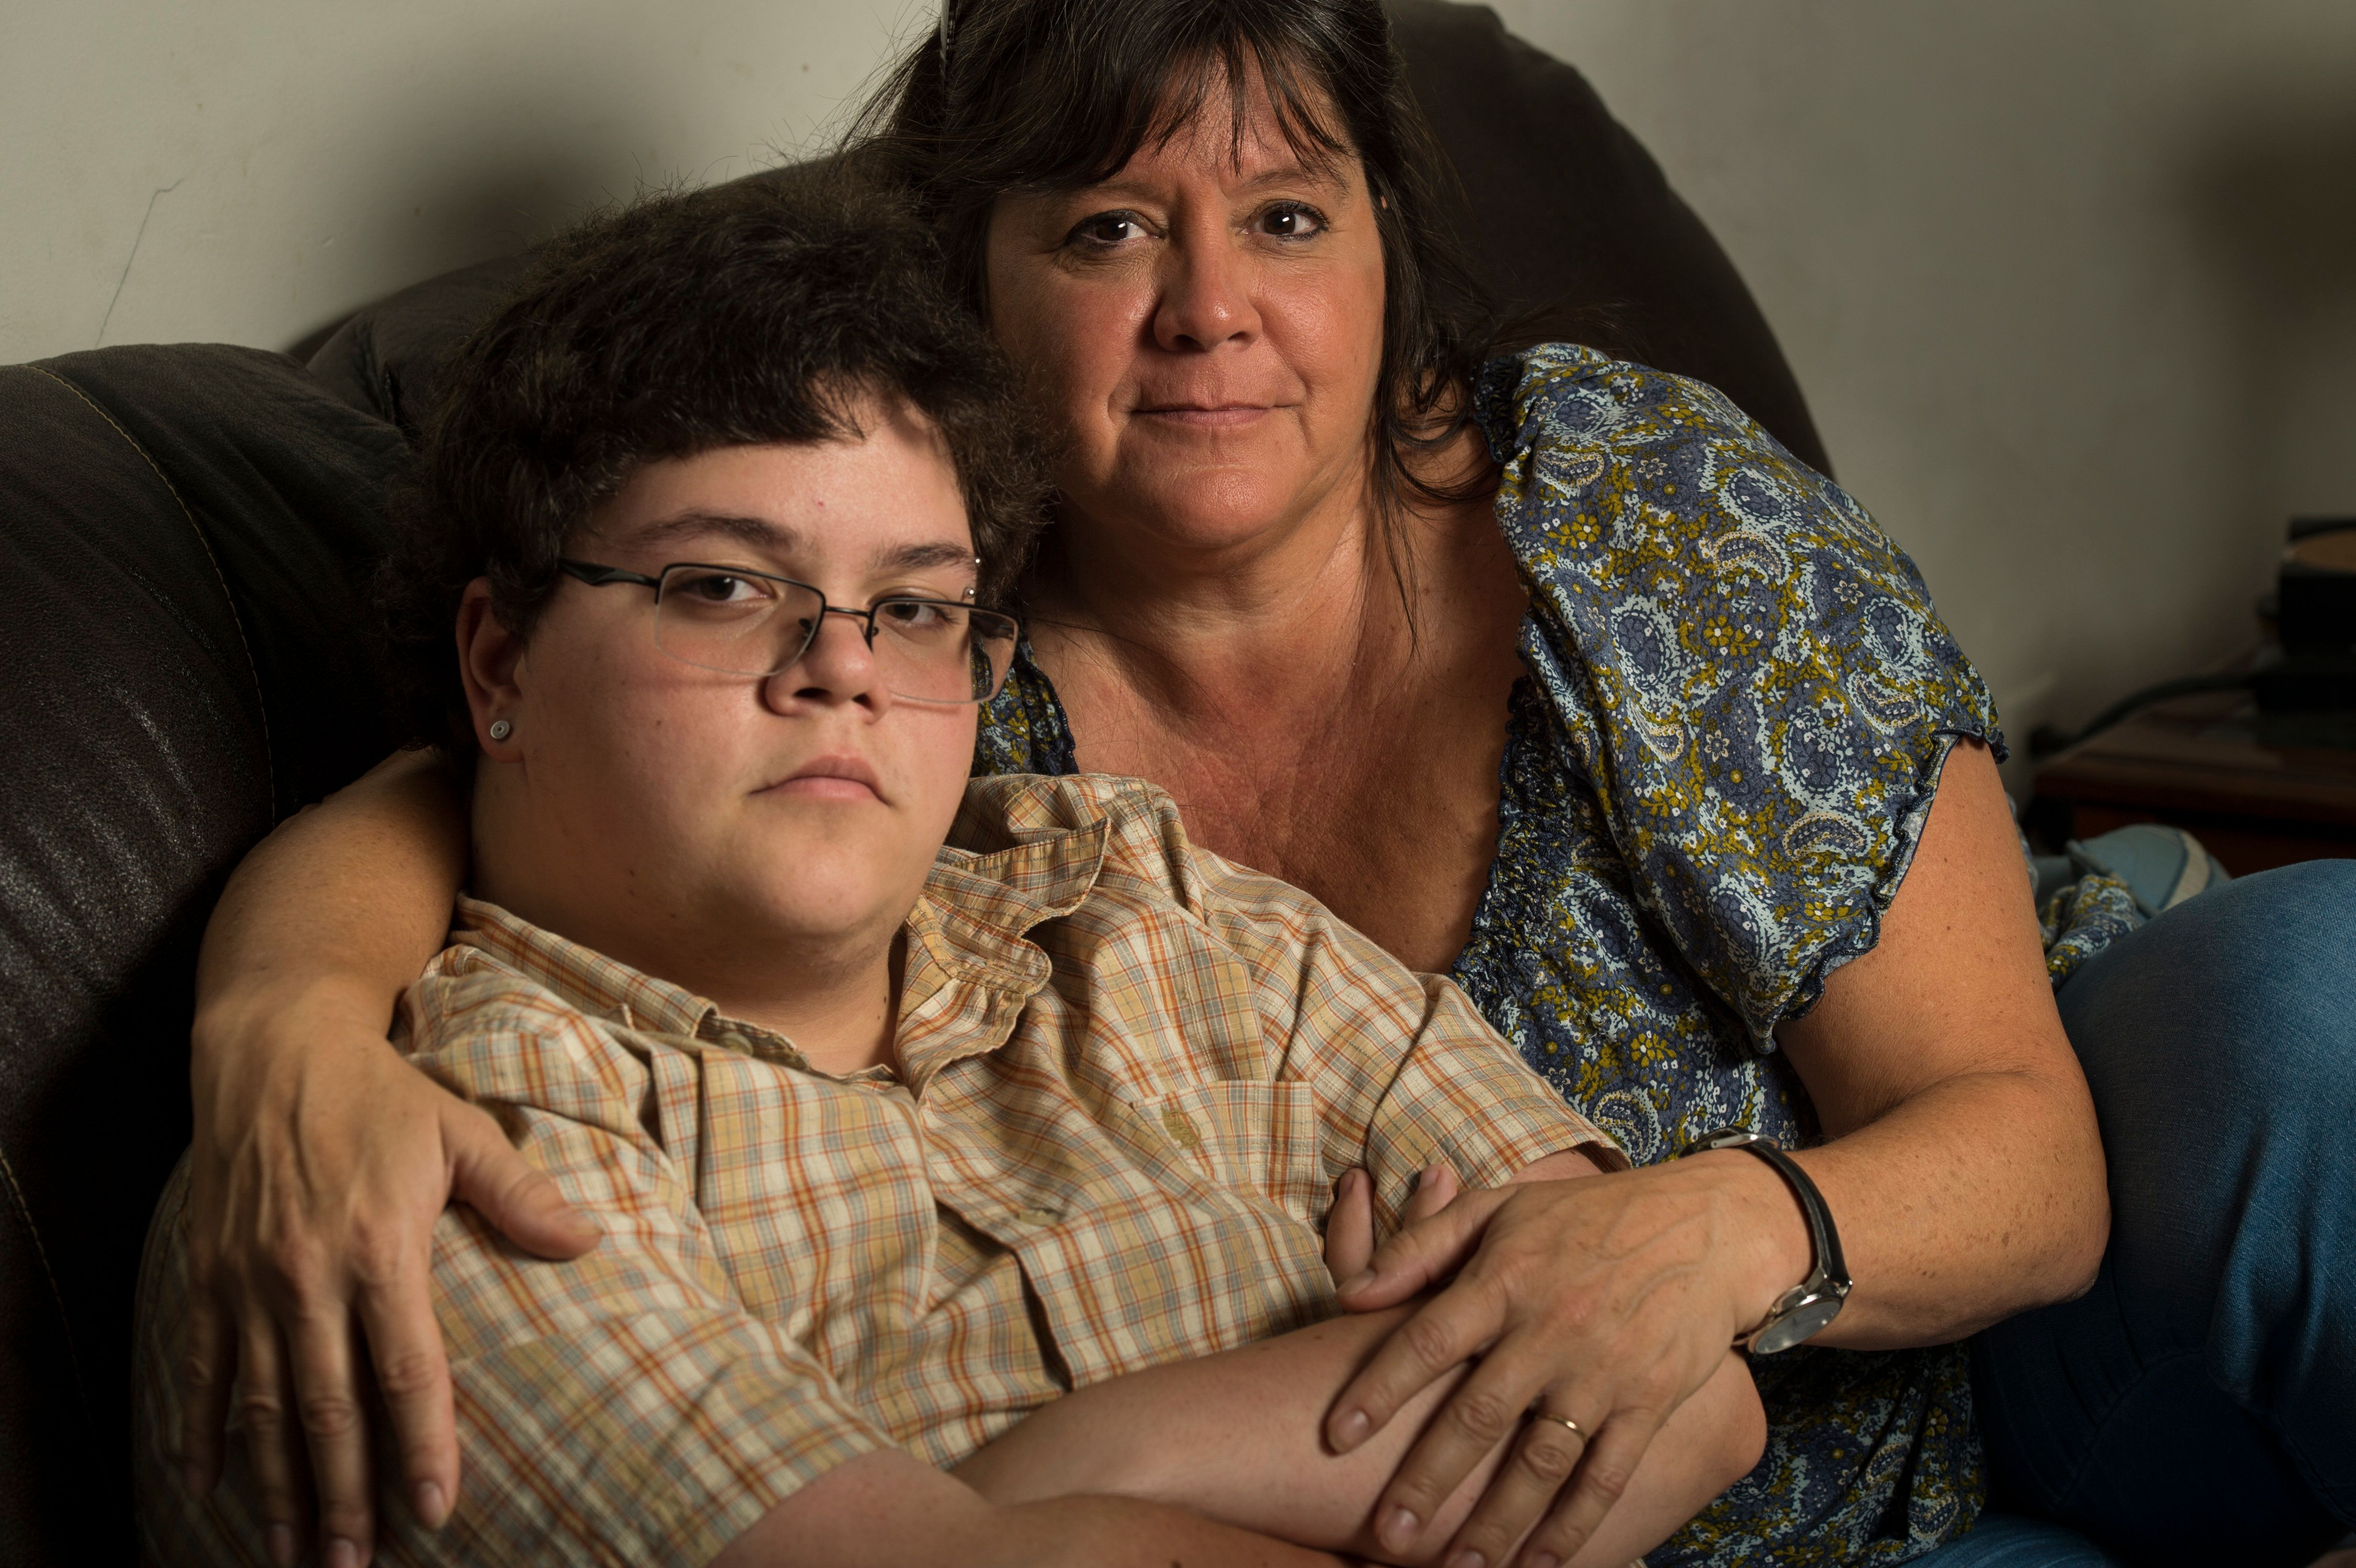 Transgender teen Gavin Grimm sued theGloucester County School Board after it barred him from the boys bathroom.